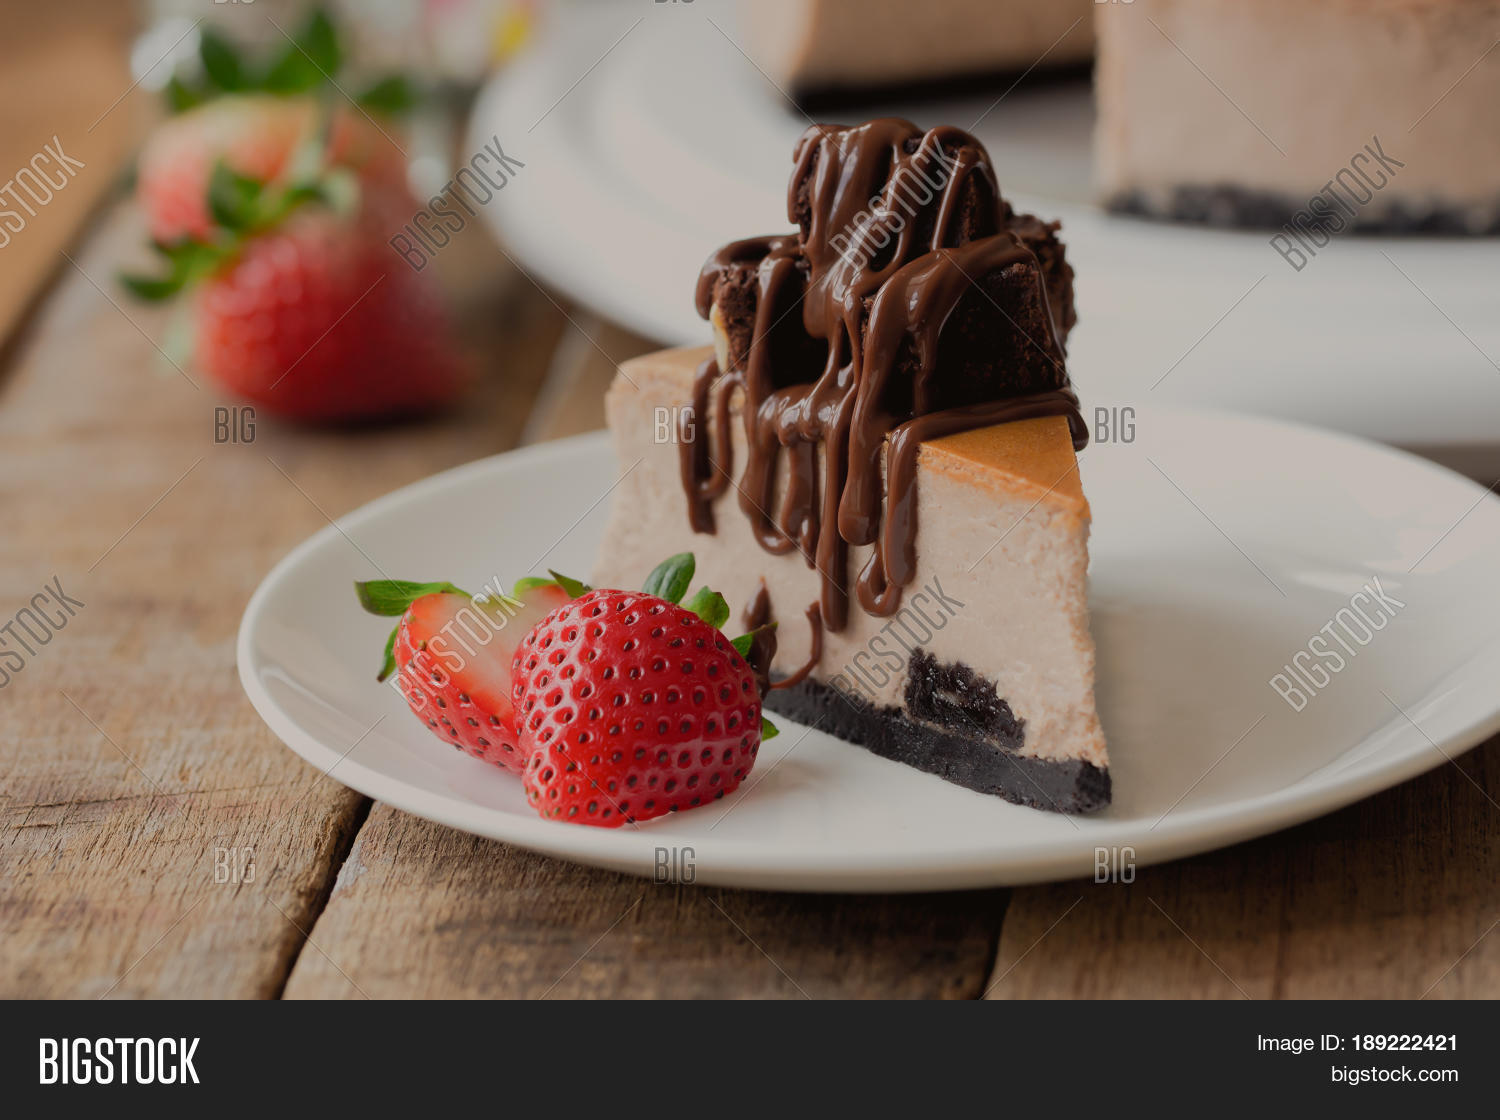 Homemade chocolate cheesecake on rustic wood table. Baked chocolate cheesecake topping brownie and dark chocolate & Homemade Chocolate Image u0026 Photo (Free Trial) | Bigstock